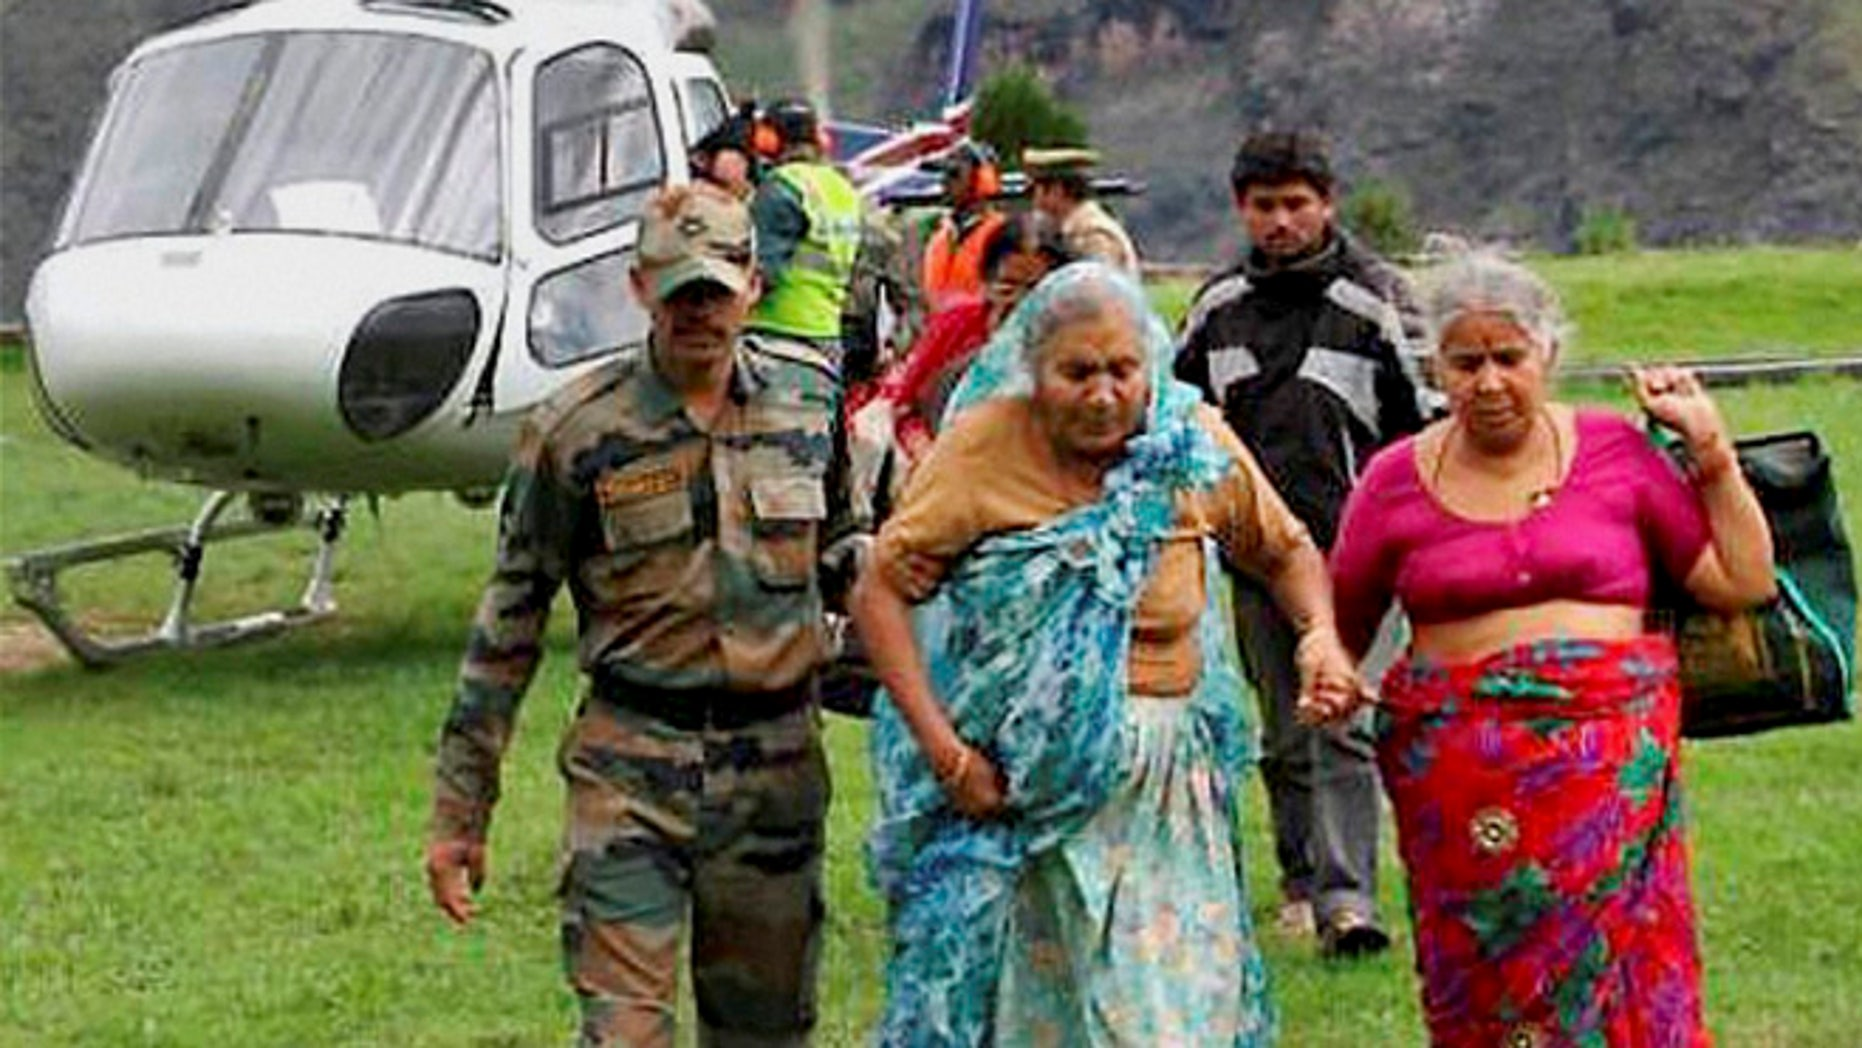 In this Wednesday June 19, 2013 photo, an Indian army soldier helps flood affected elderly pilgrims after being evacuated from upper reaches of mountains, in Chamoli, in Indian northern state of Uttrakhand. Days after floods killed more than 100 people rescuers used helicopters and climbed through mountain paths to reach nearly 4,000 people trapped by landslides in a narrow valley near a Hindu shrine in the northern Himalayas, officials said Thursday.